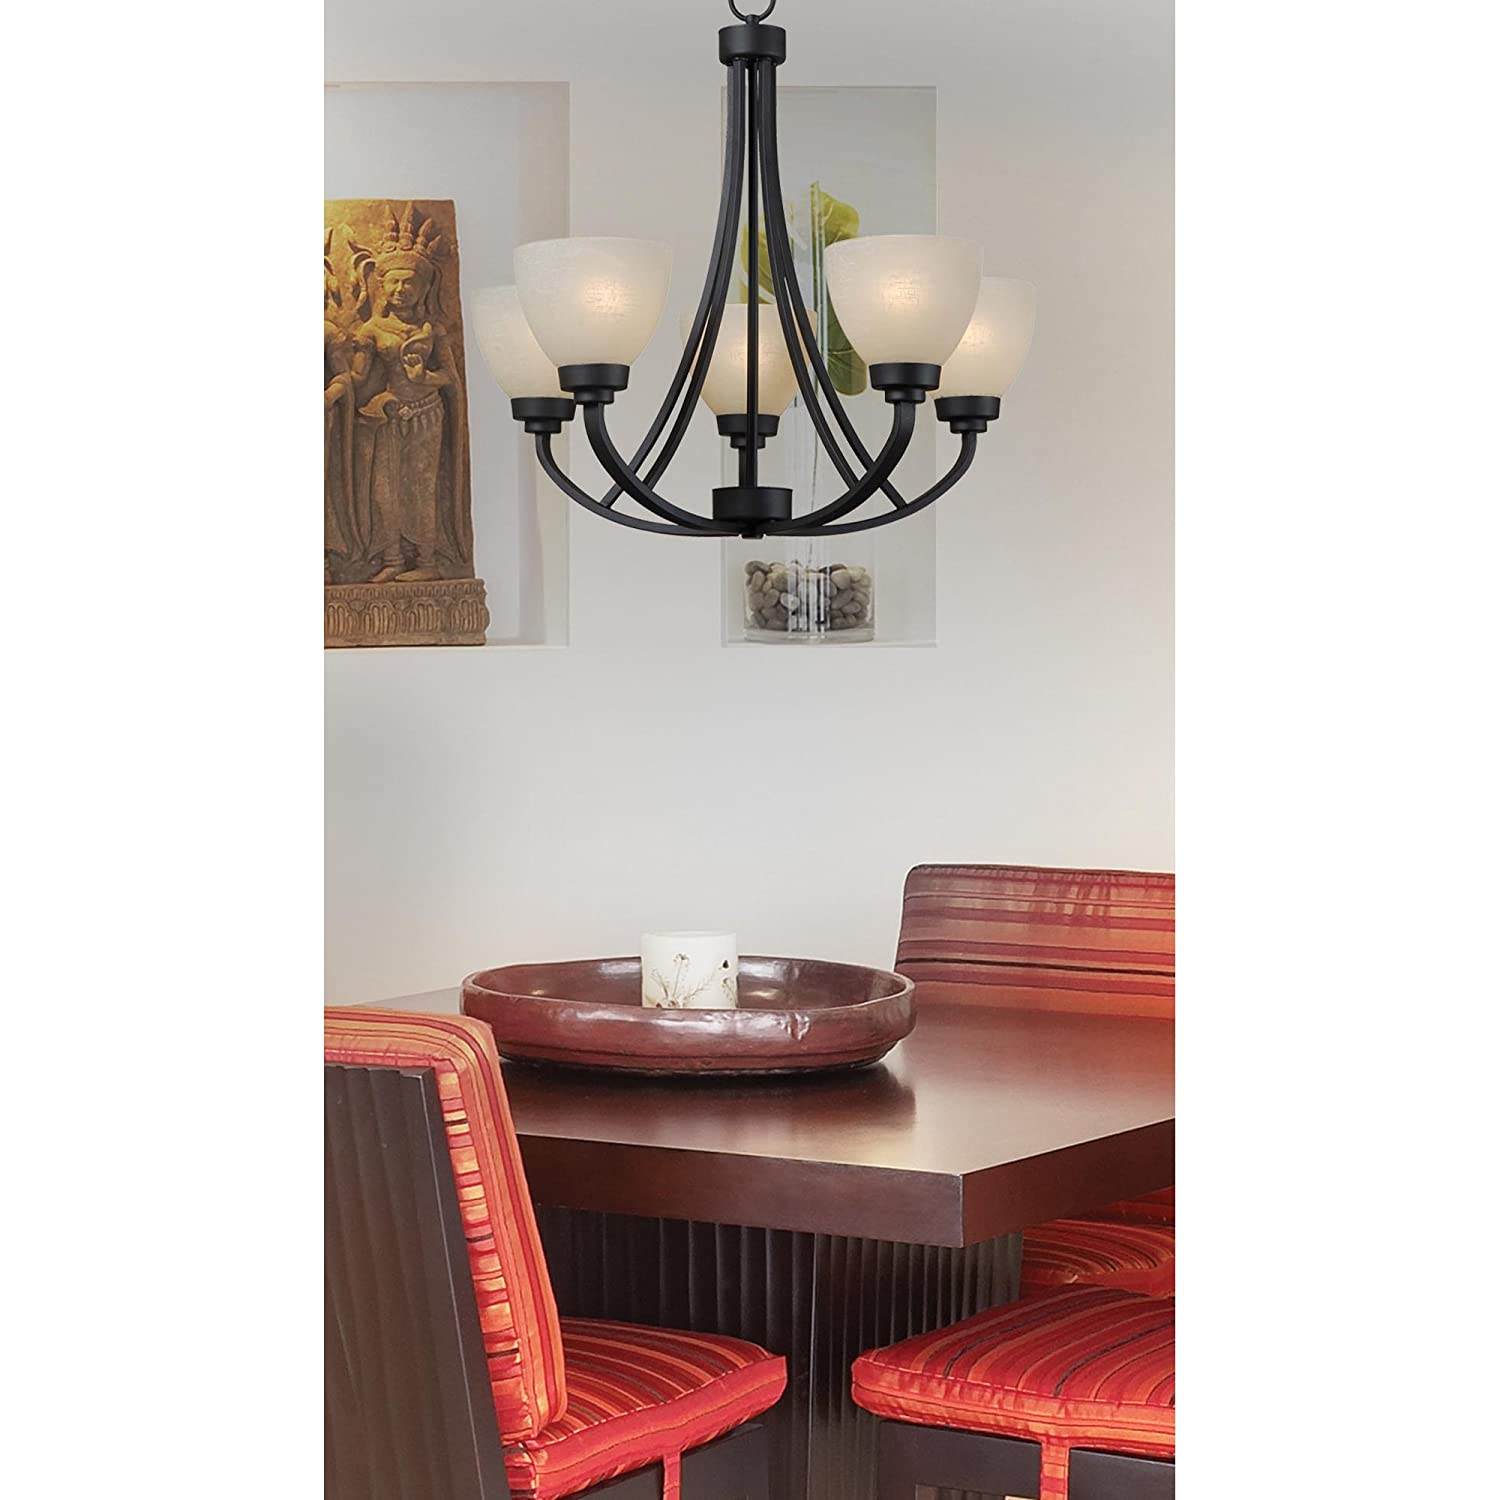 Kenroy home 93195bbz dynasty 5 light chandelier with burnished kenroy home 93195bbz dynasty 5 light chandelier with burnished bronze finish amazon aloadofball Gallery